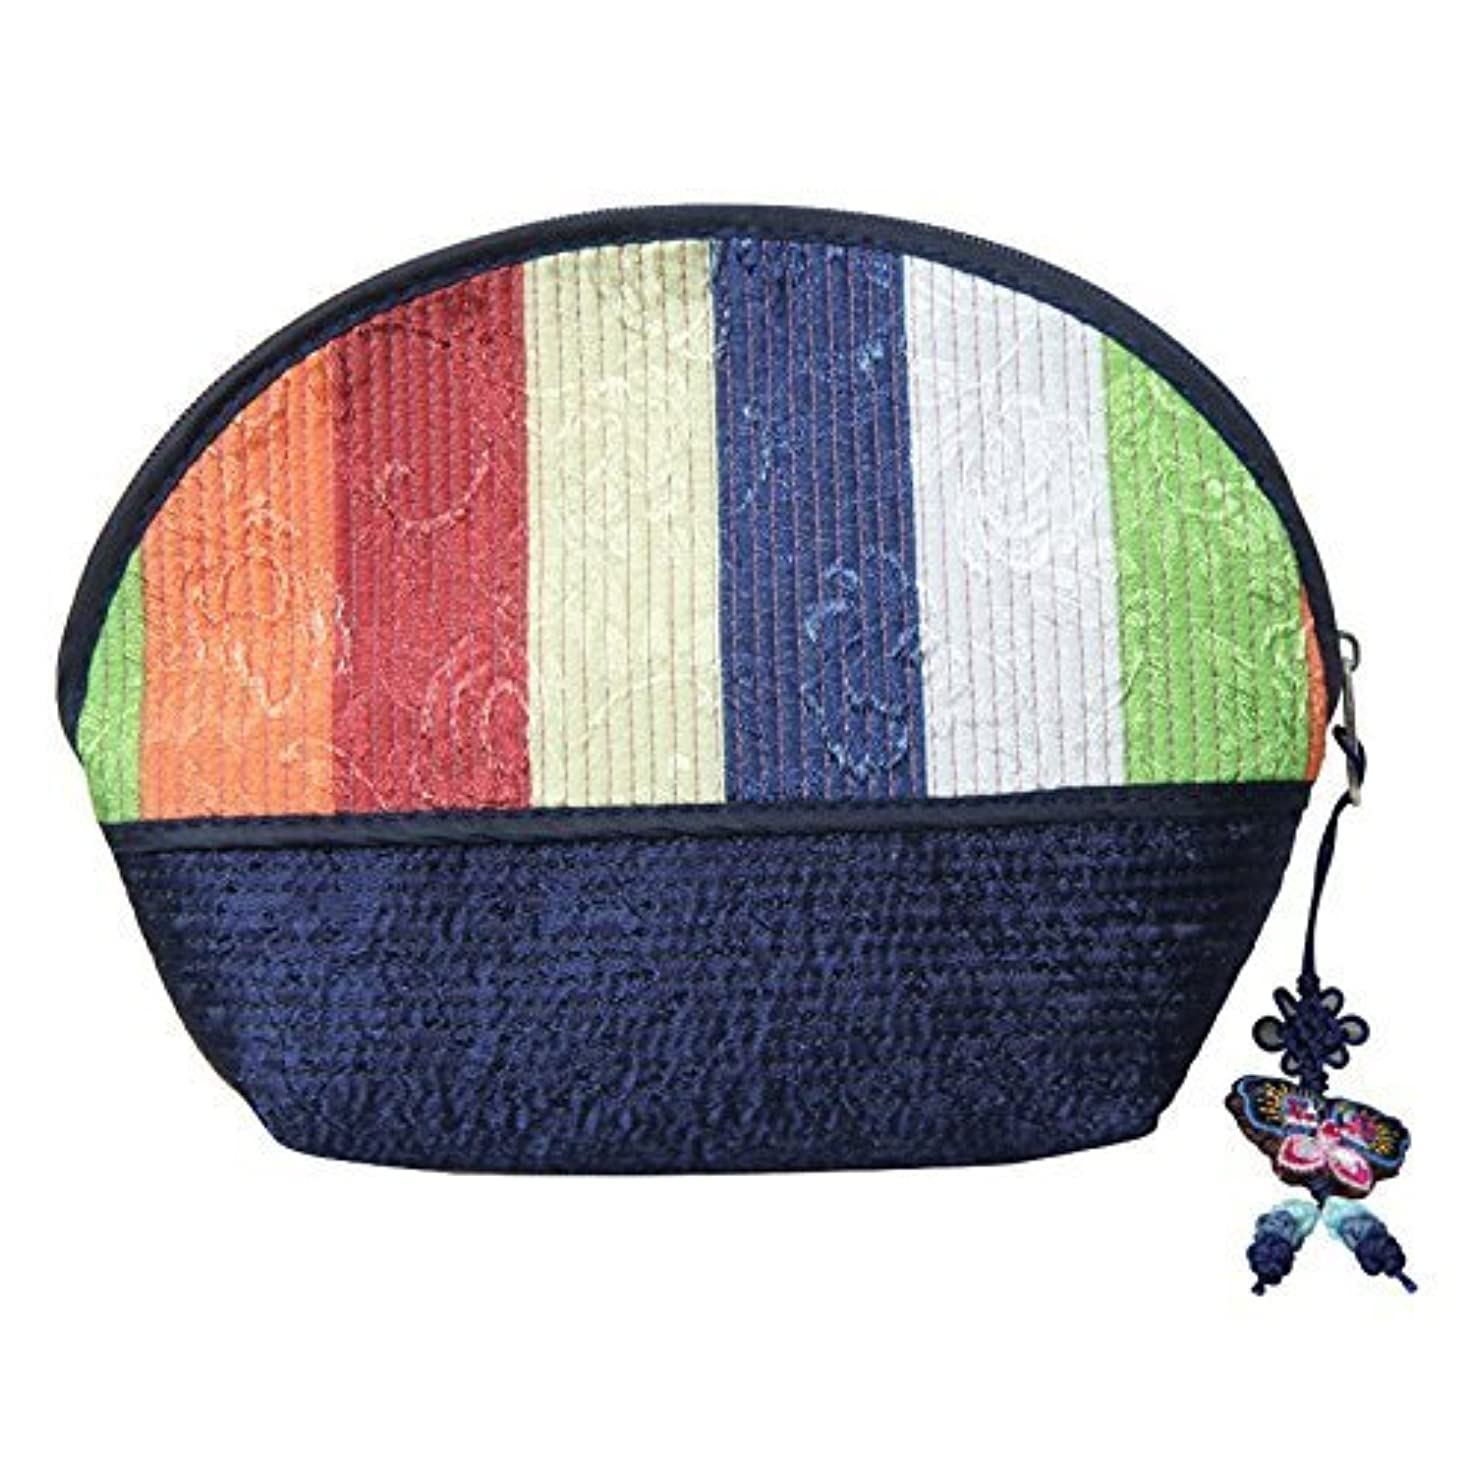 Cosmetic Pouch Navy / 韓国の伝統的なパターン/韓国のお土産の贈り物 [並行輸入品]